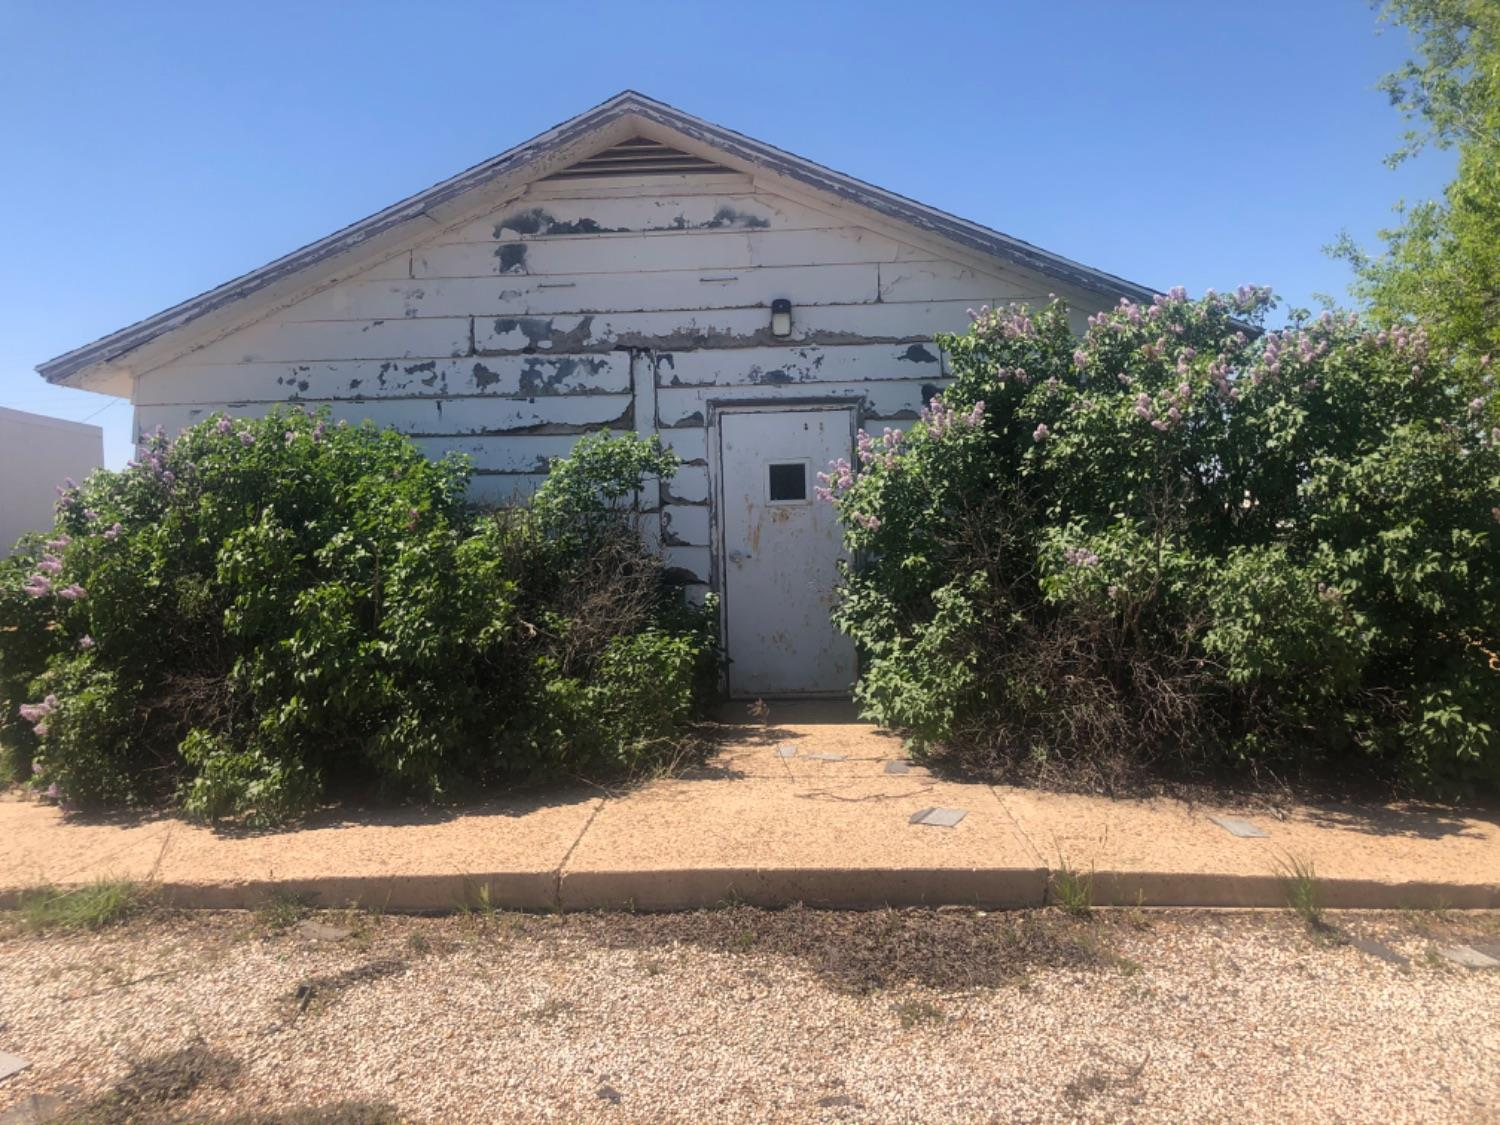 Former Post Office in McAdoo, TX could be used as an office, flex space or renovating it into whatever you can dream (as per Zoning rules). With some TLC, a handyman could make this building useful again. Cash buyer preferred.